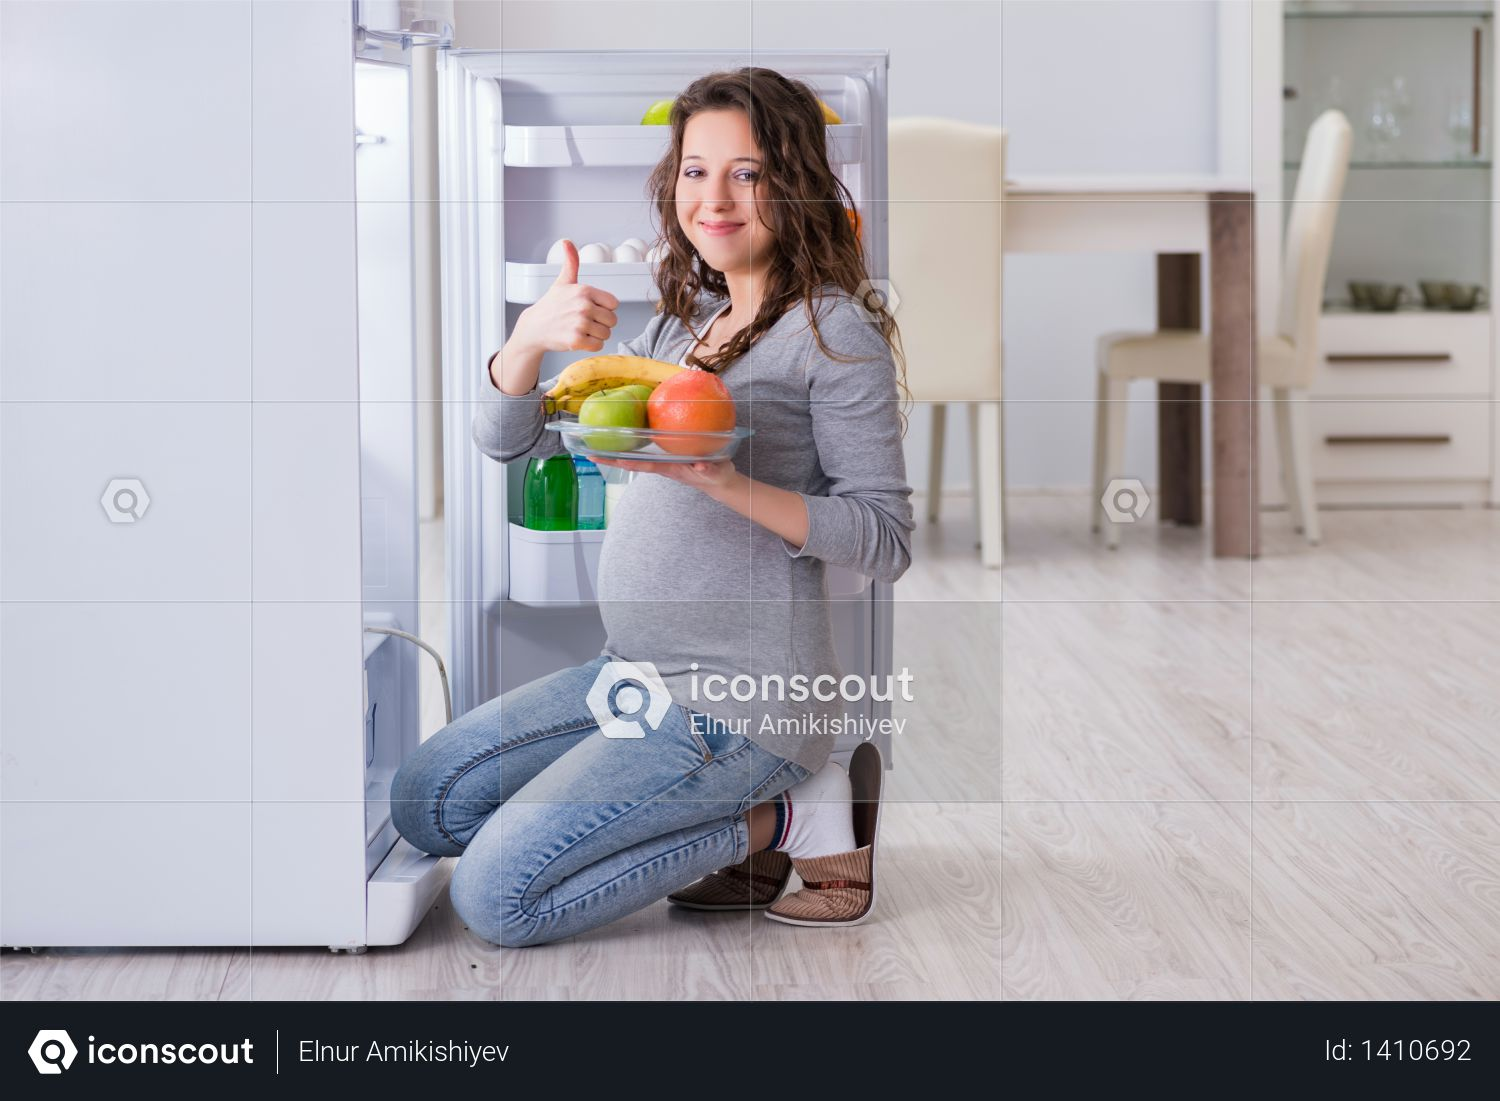 Pregnant woman near fridge looking for food and snacks Photo